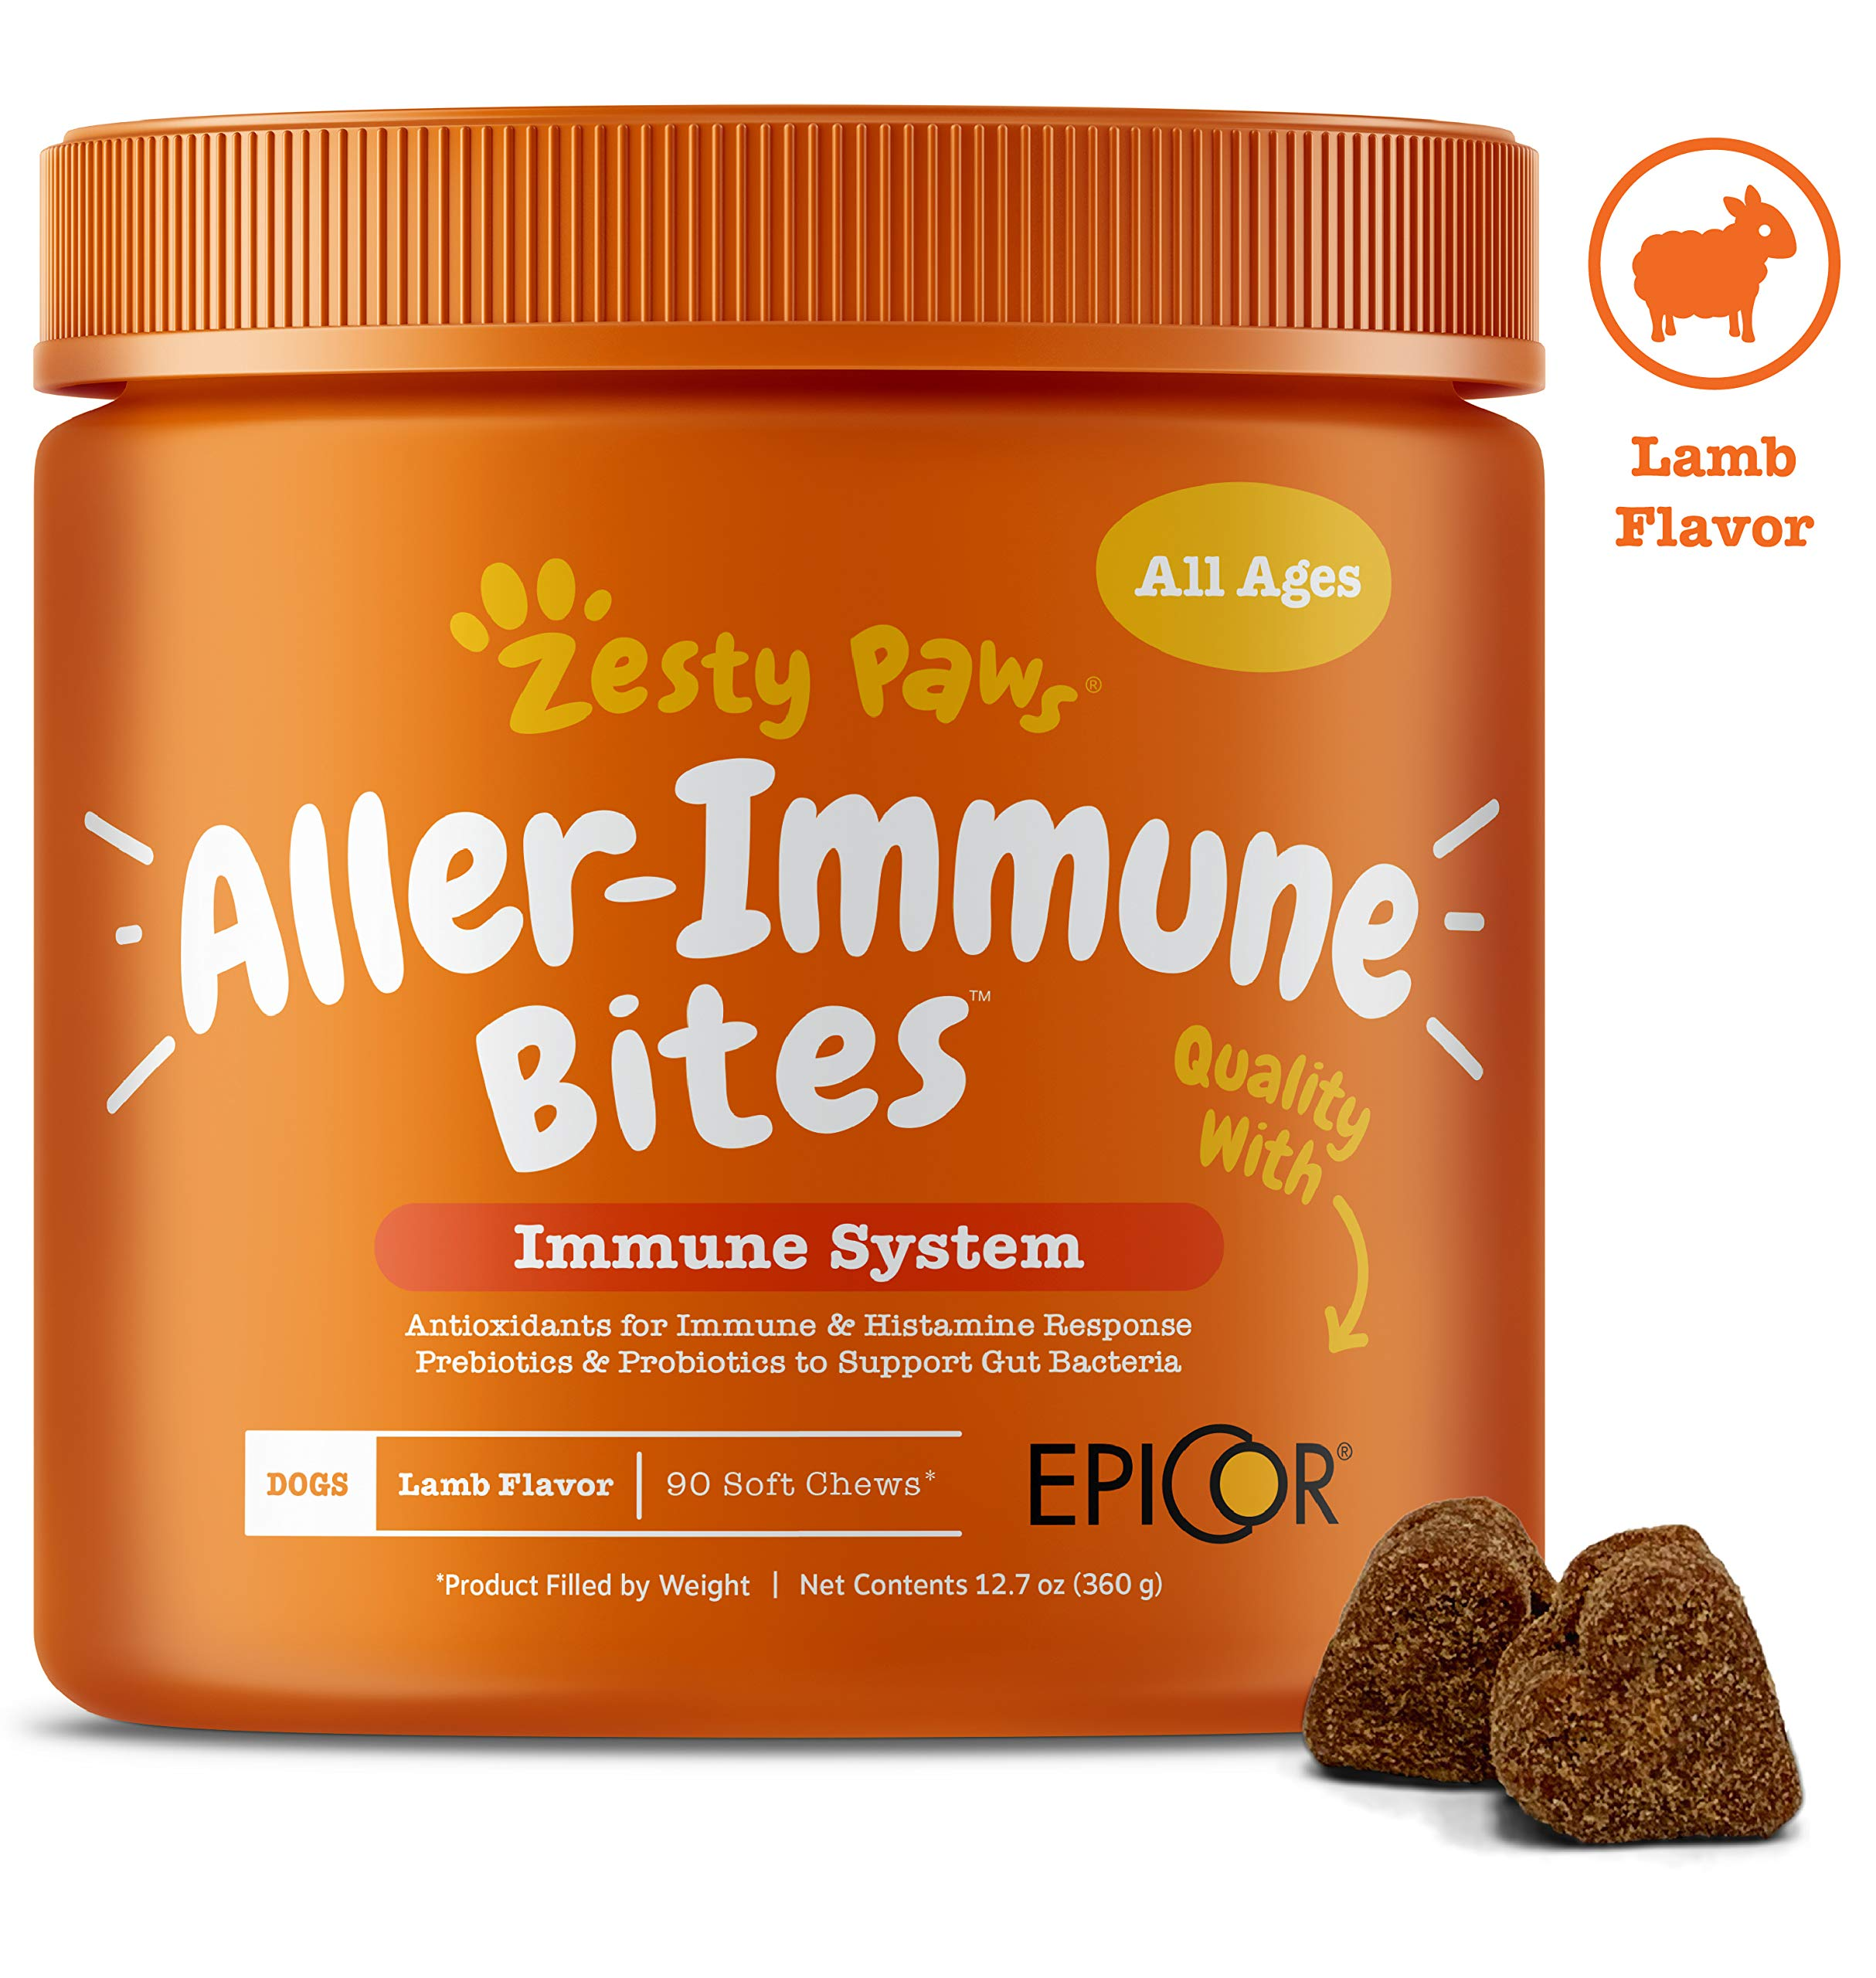 Allergy Immune Supplement for Dogs Lamb- with Omega 3 Wild Alaskan Salmon Fish Oil & EpiCor + Digestive Prebiotics & Probiotics - Anti Itch & Skin Hot Spots + Seasonal Allergies - 90 Chews by Zesty Paws